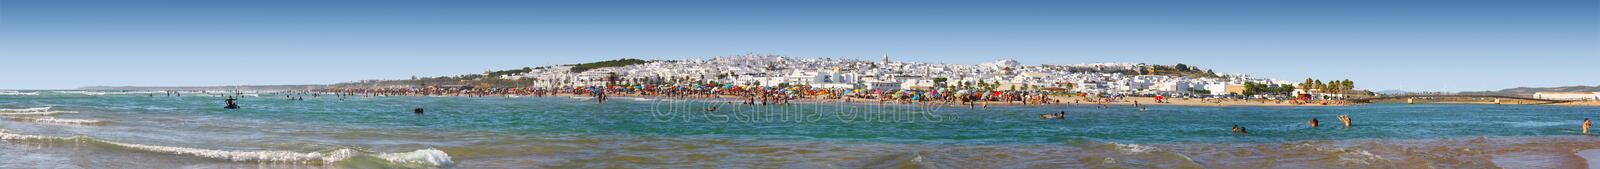 Beach panorama of conil de la frontera. Populated beach panorama of Conil de la Frontera on the Costa de la Luz, Andalusia Spain royalty free stock image